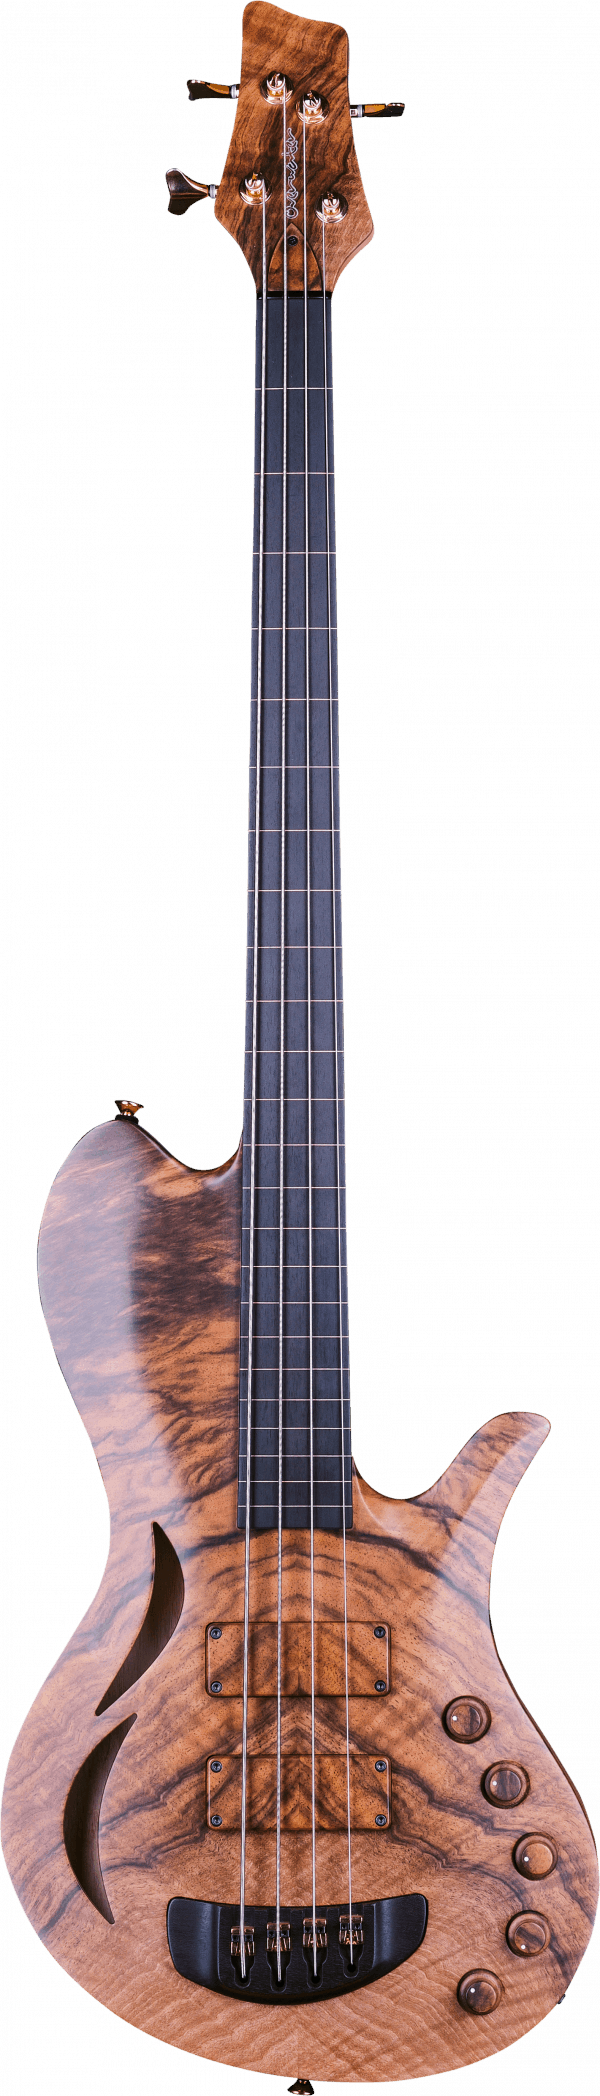 Overwater Hollowbody Thinline 4 Fretless